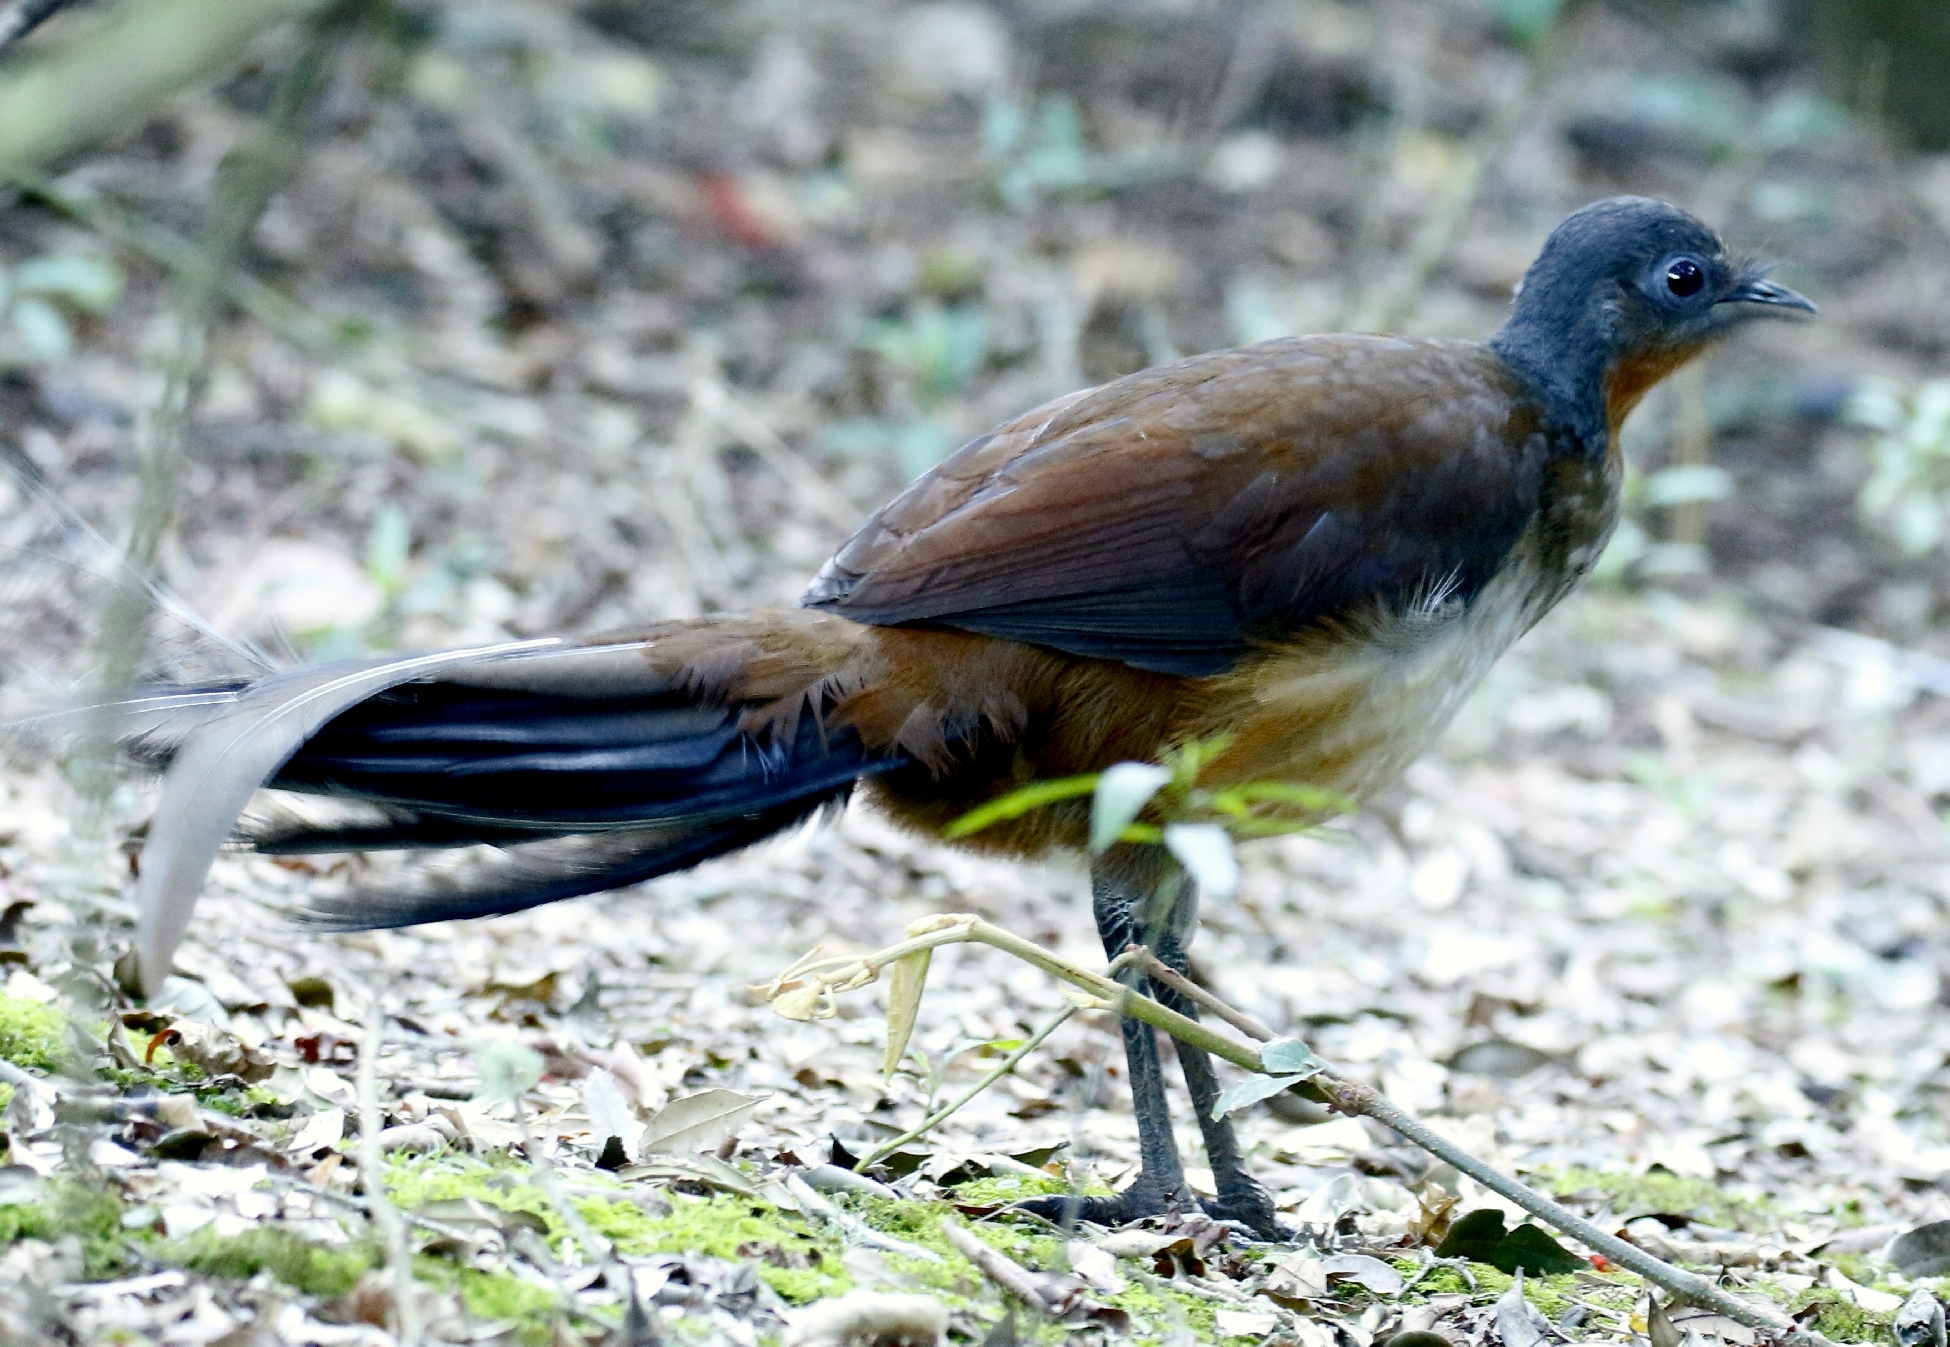 Albert's lyrebird, as photographed at O'Reilly's Lodge in Australia on October 20, 2015.